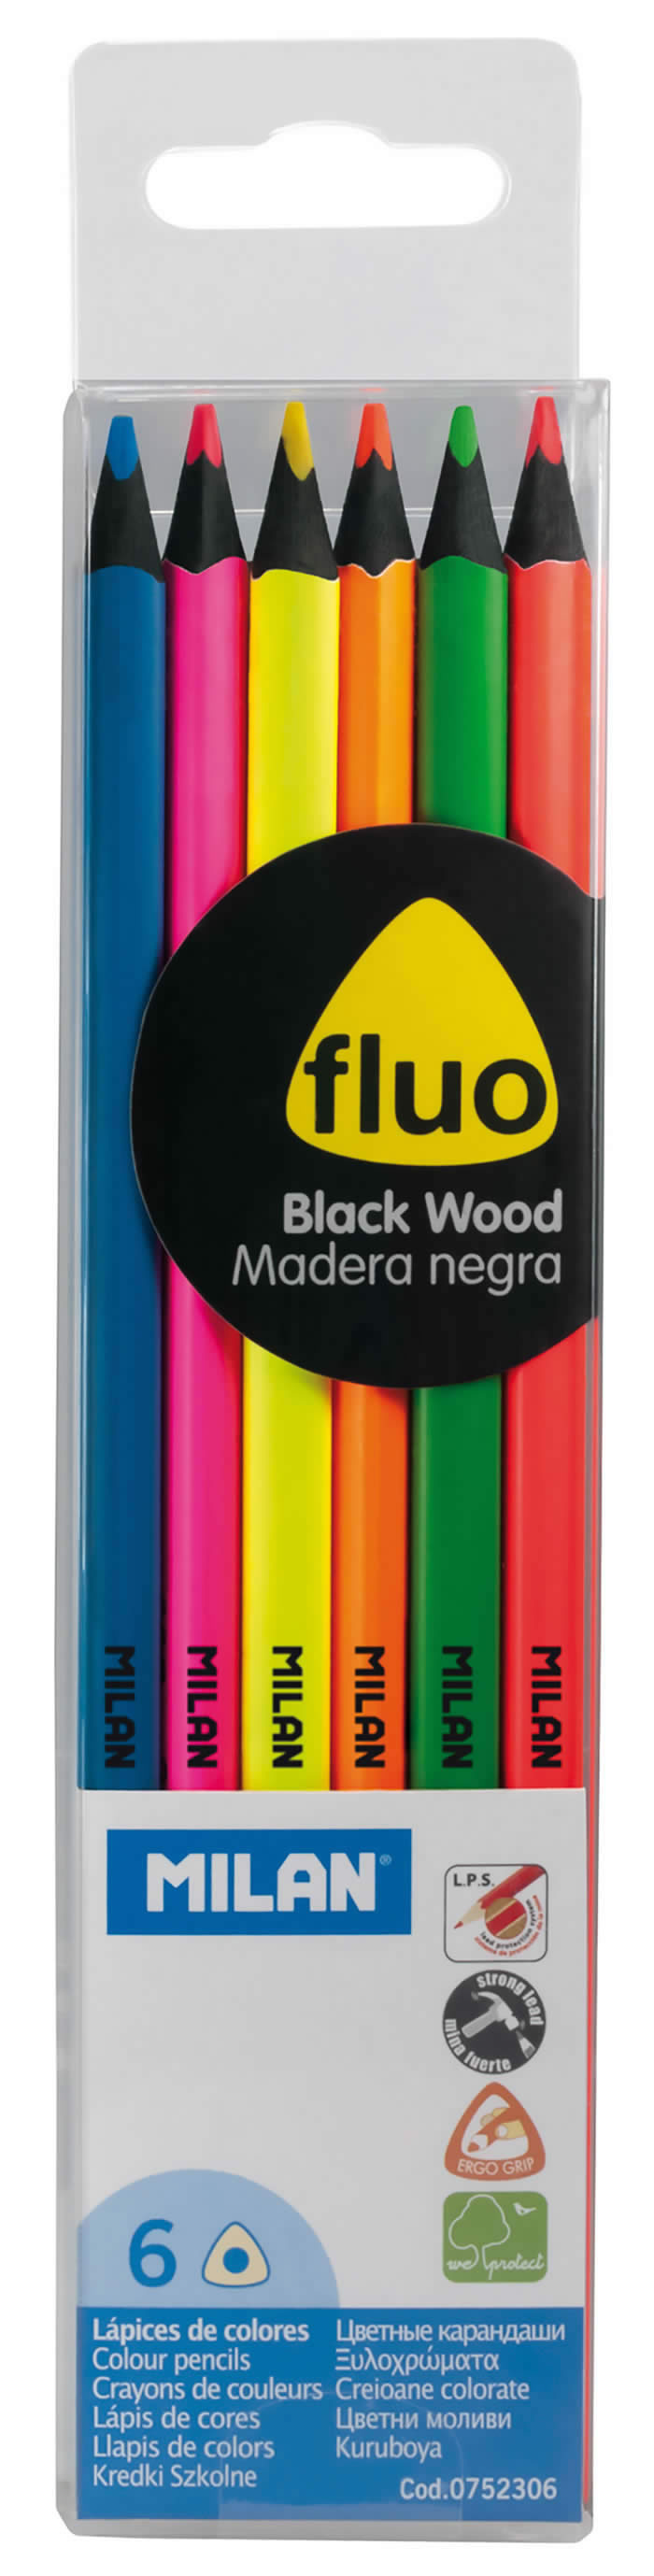 Lapices colores Milan 6 uds. fluo madera